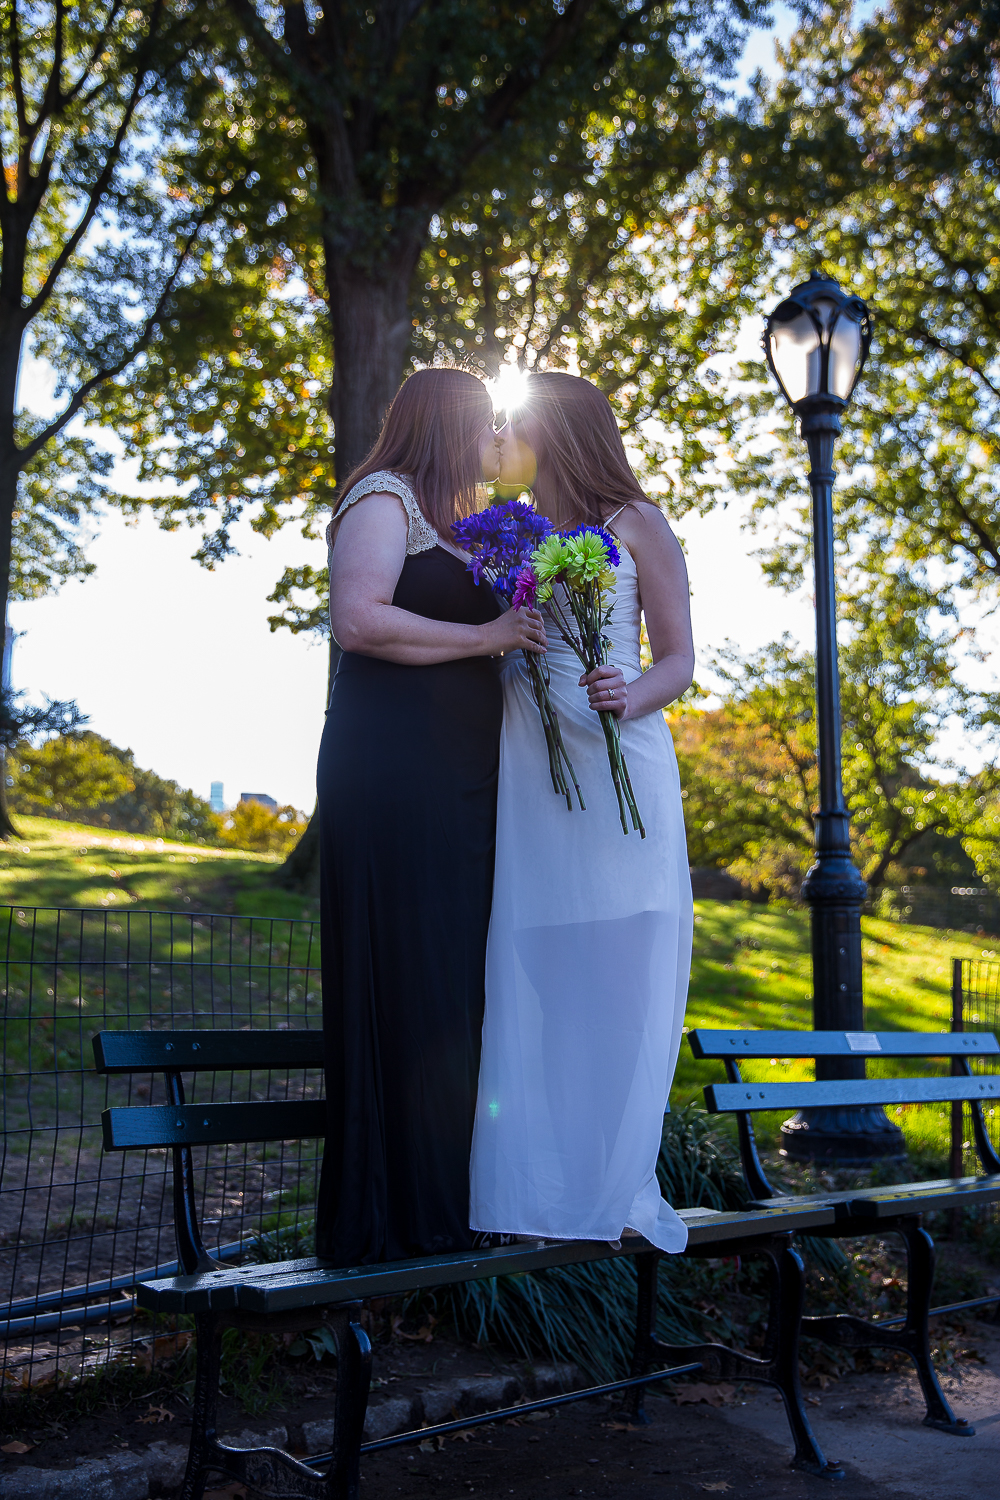 Central-park-wedding-photography-NYC-6.jpg